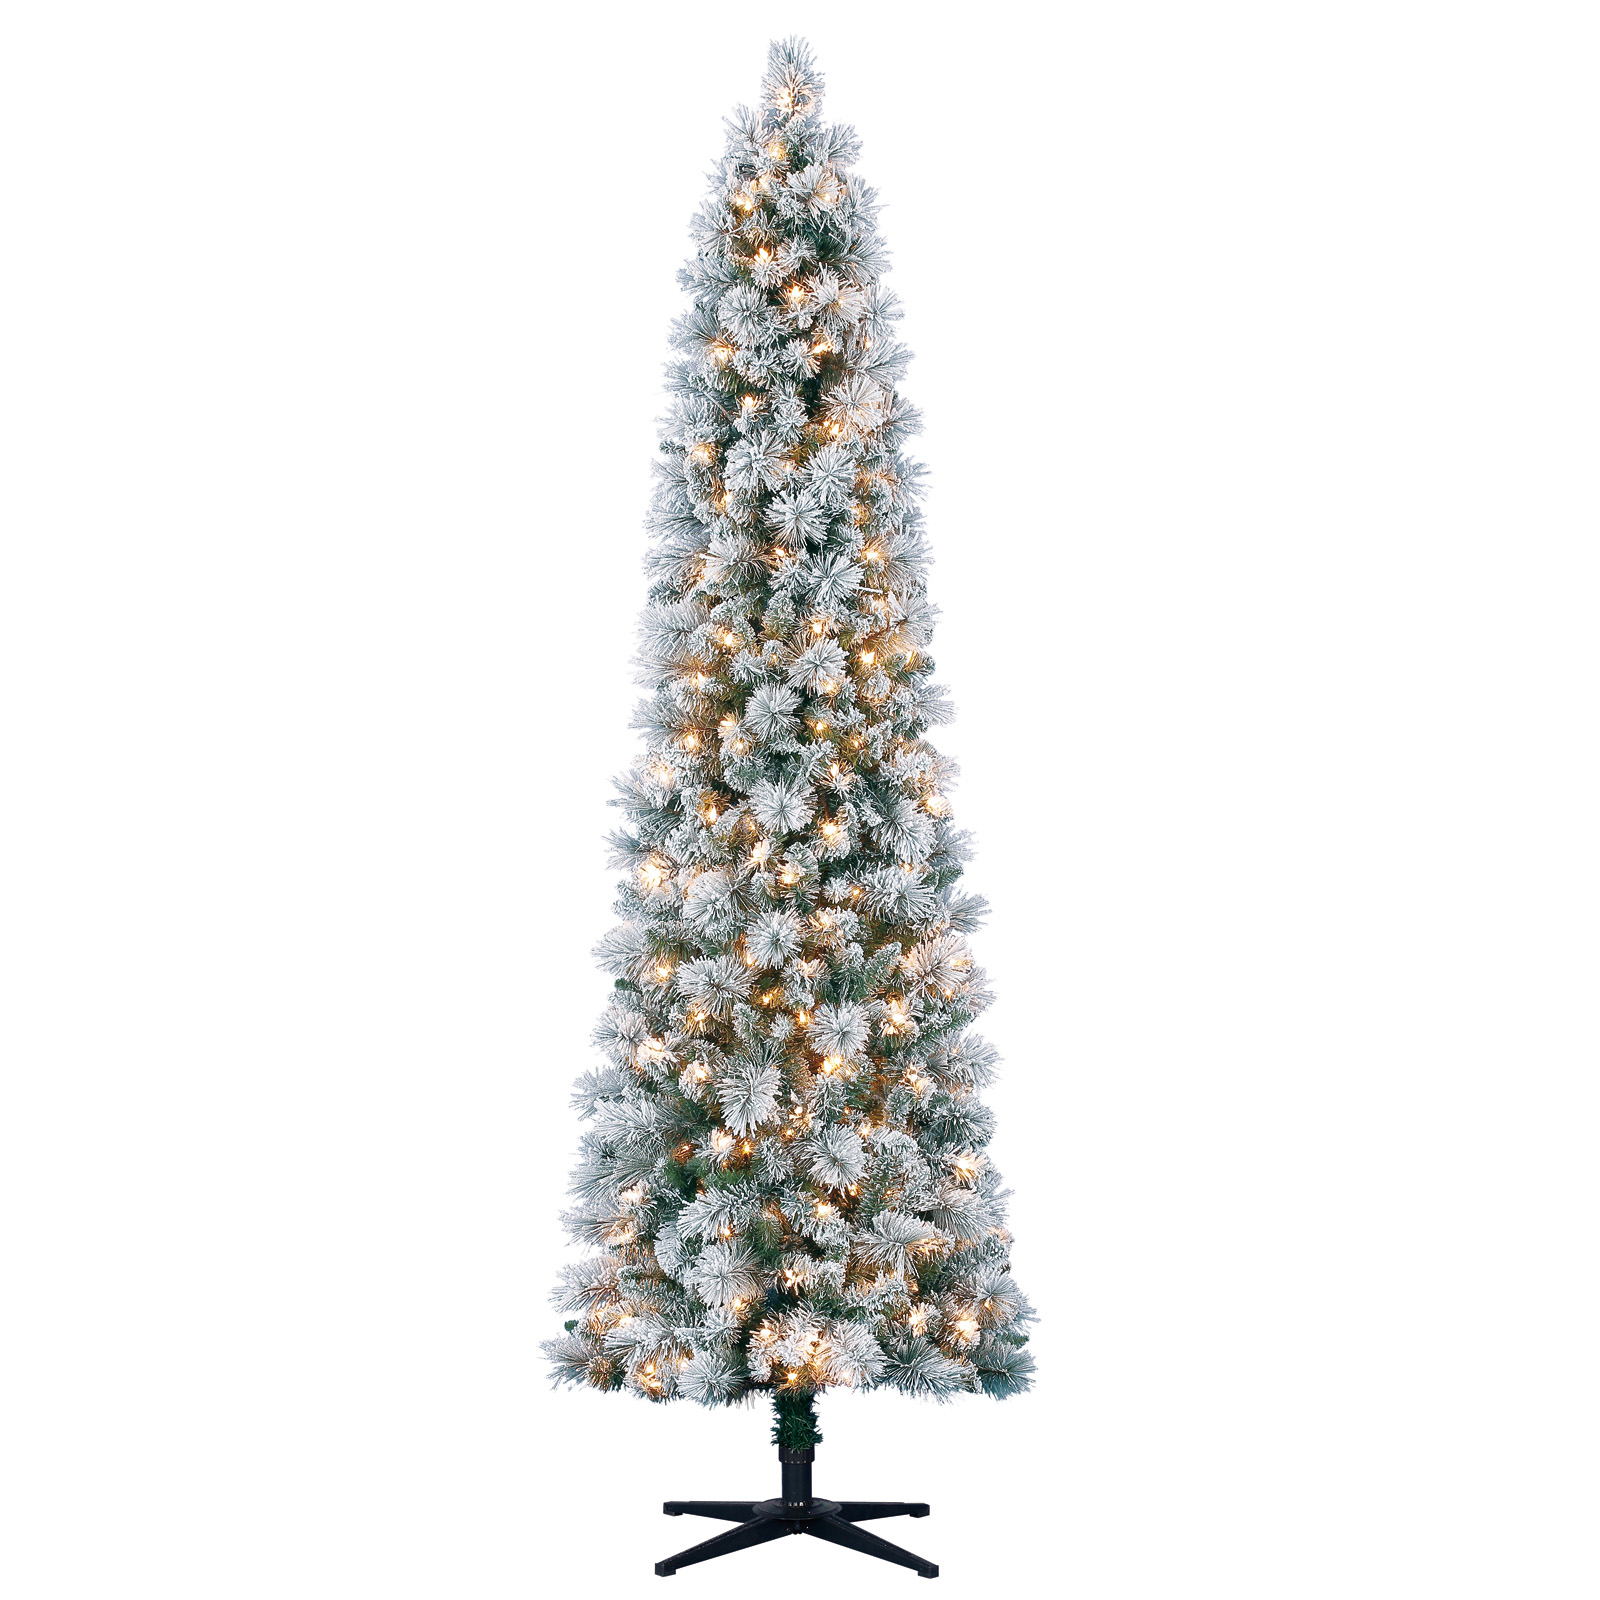 7 Ft. Pre-Lit Mixed Flocked Slim Artificial Christmas Tree, Clear ...